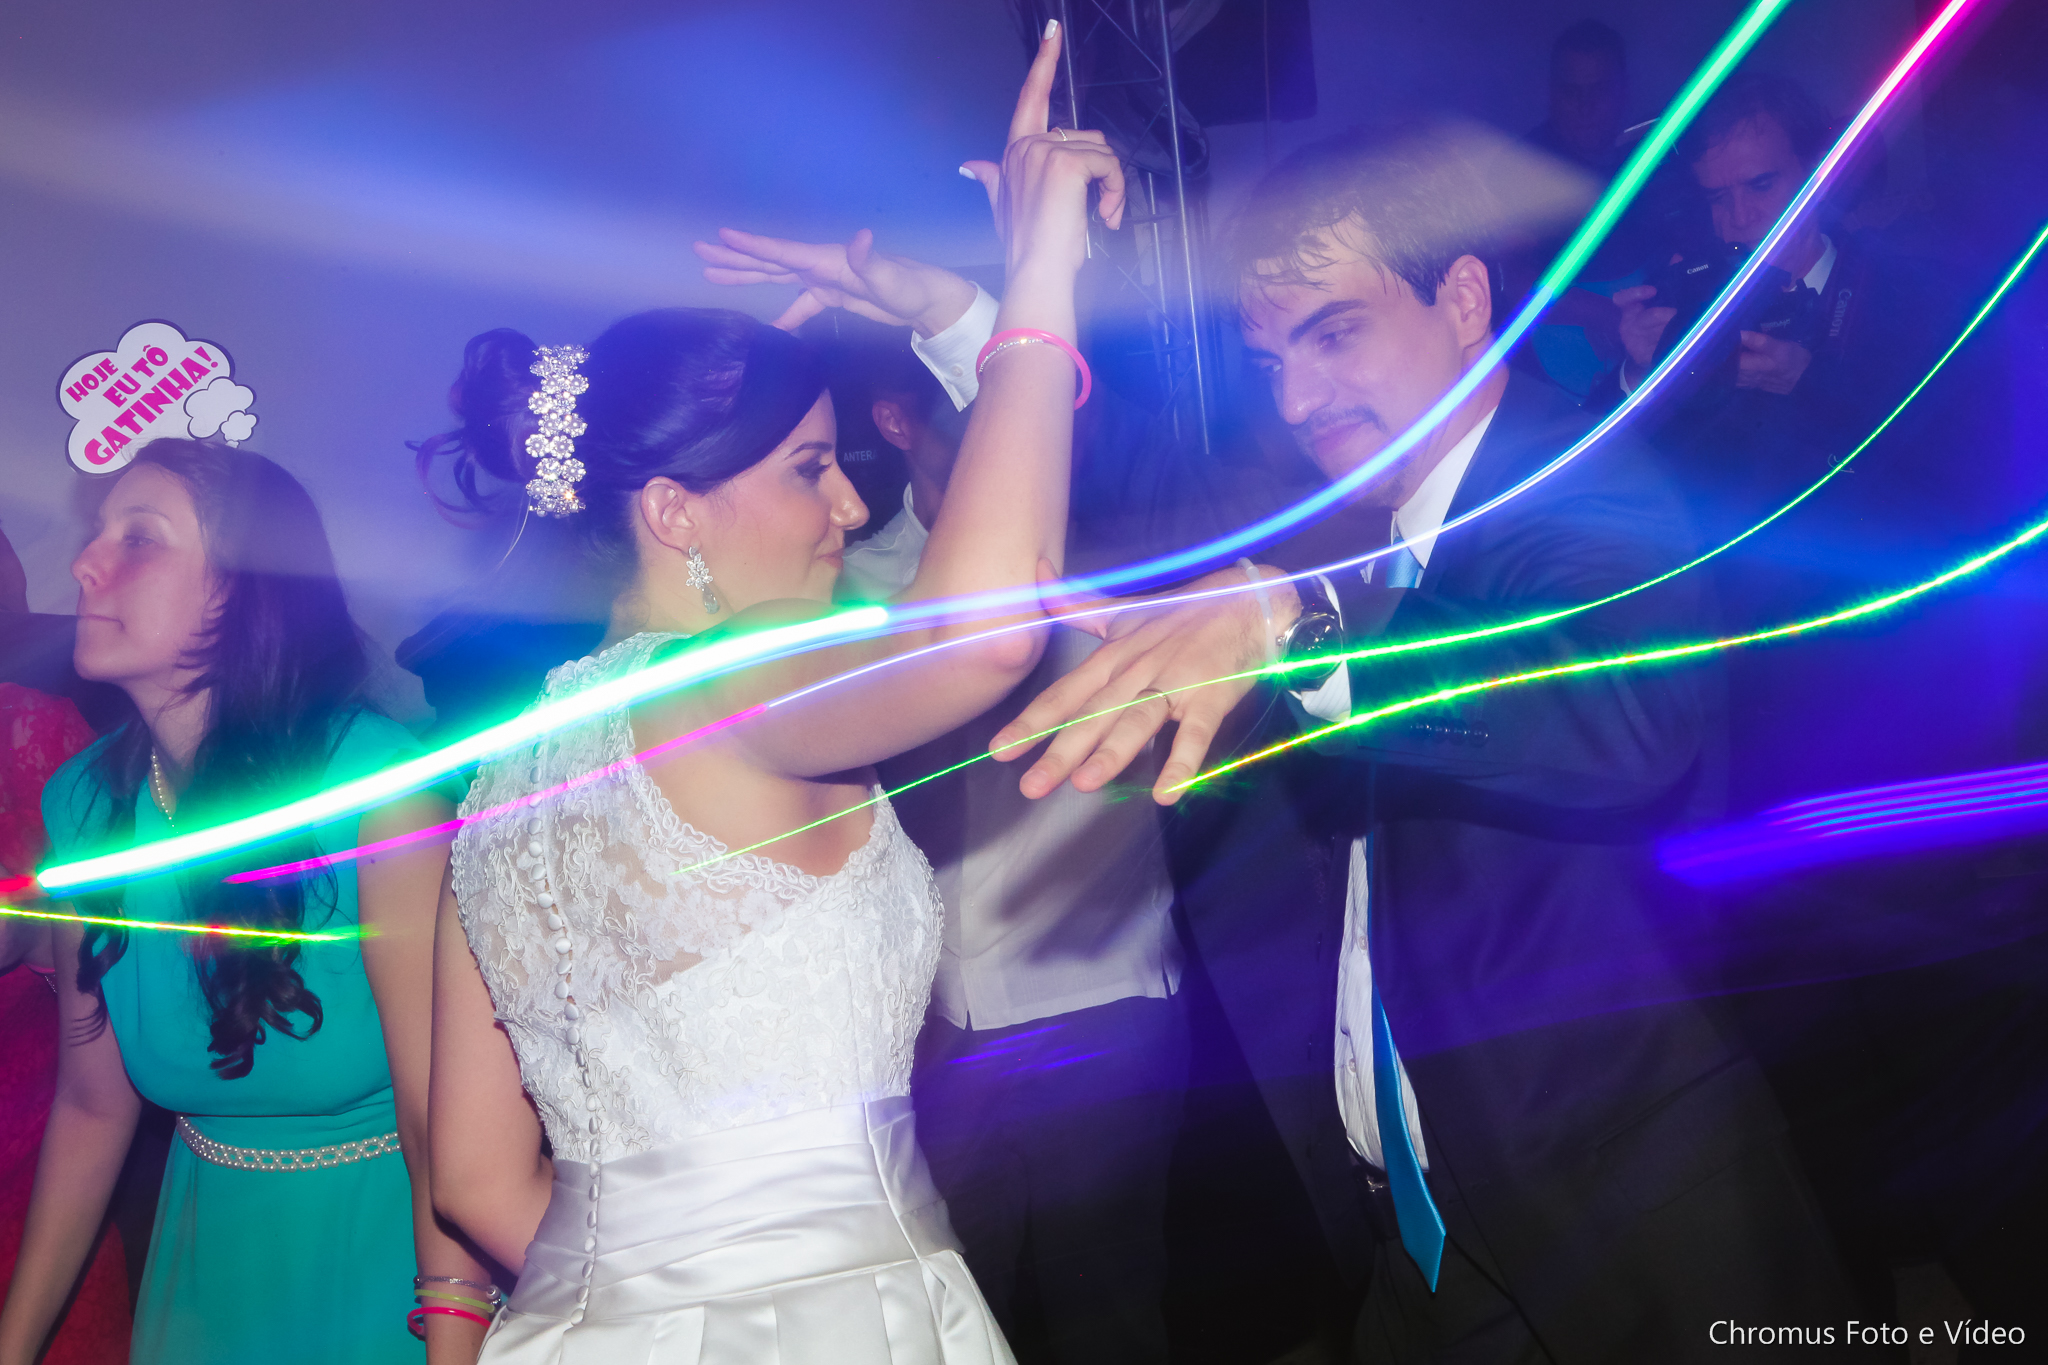 foto-video-casamento-chromus